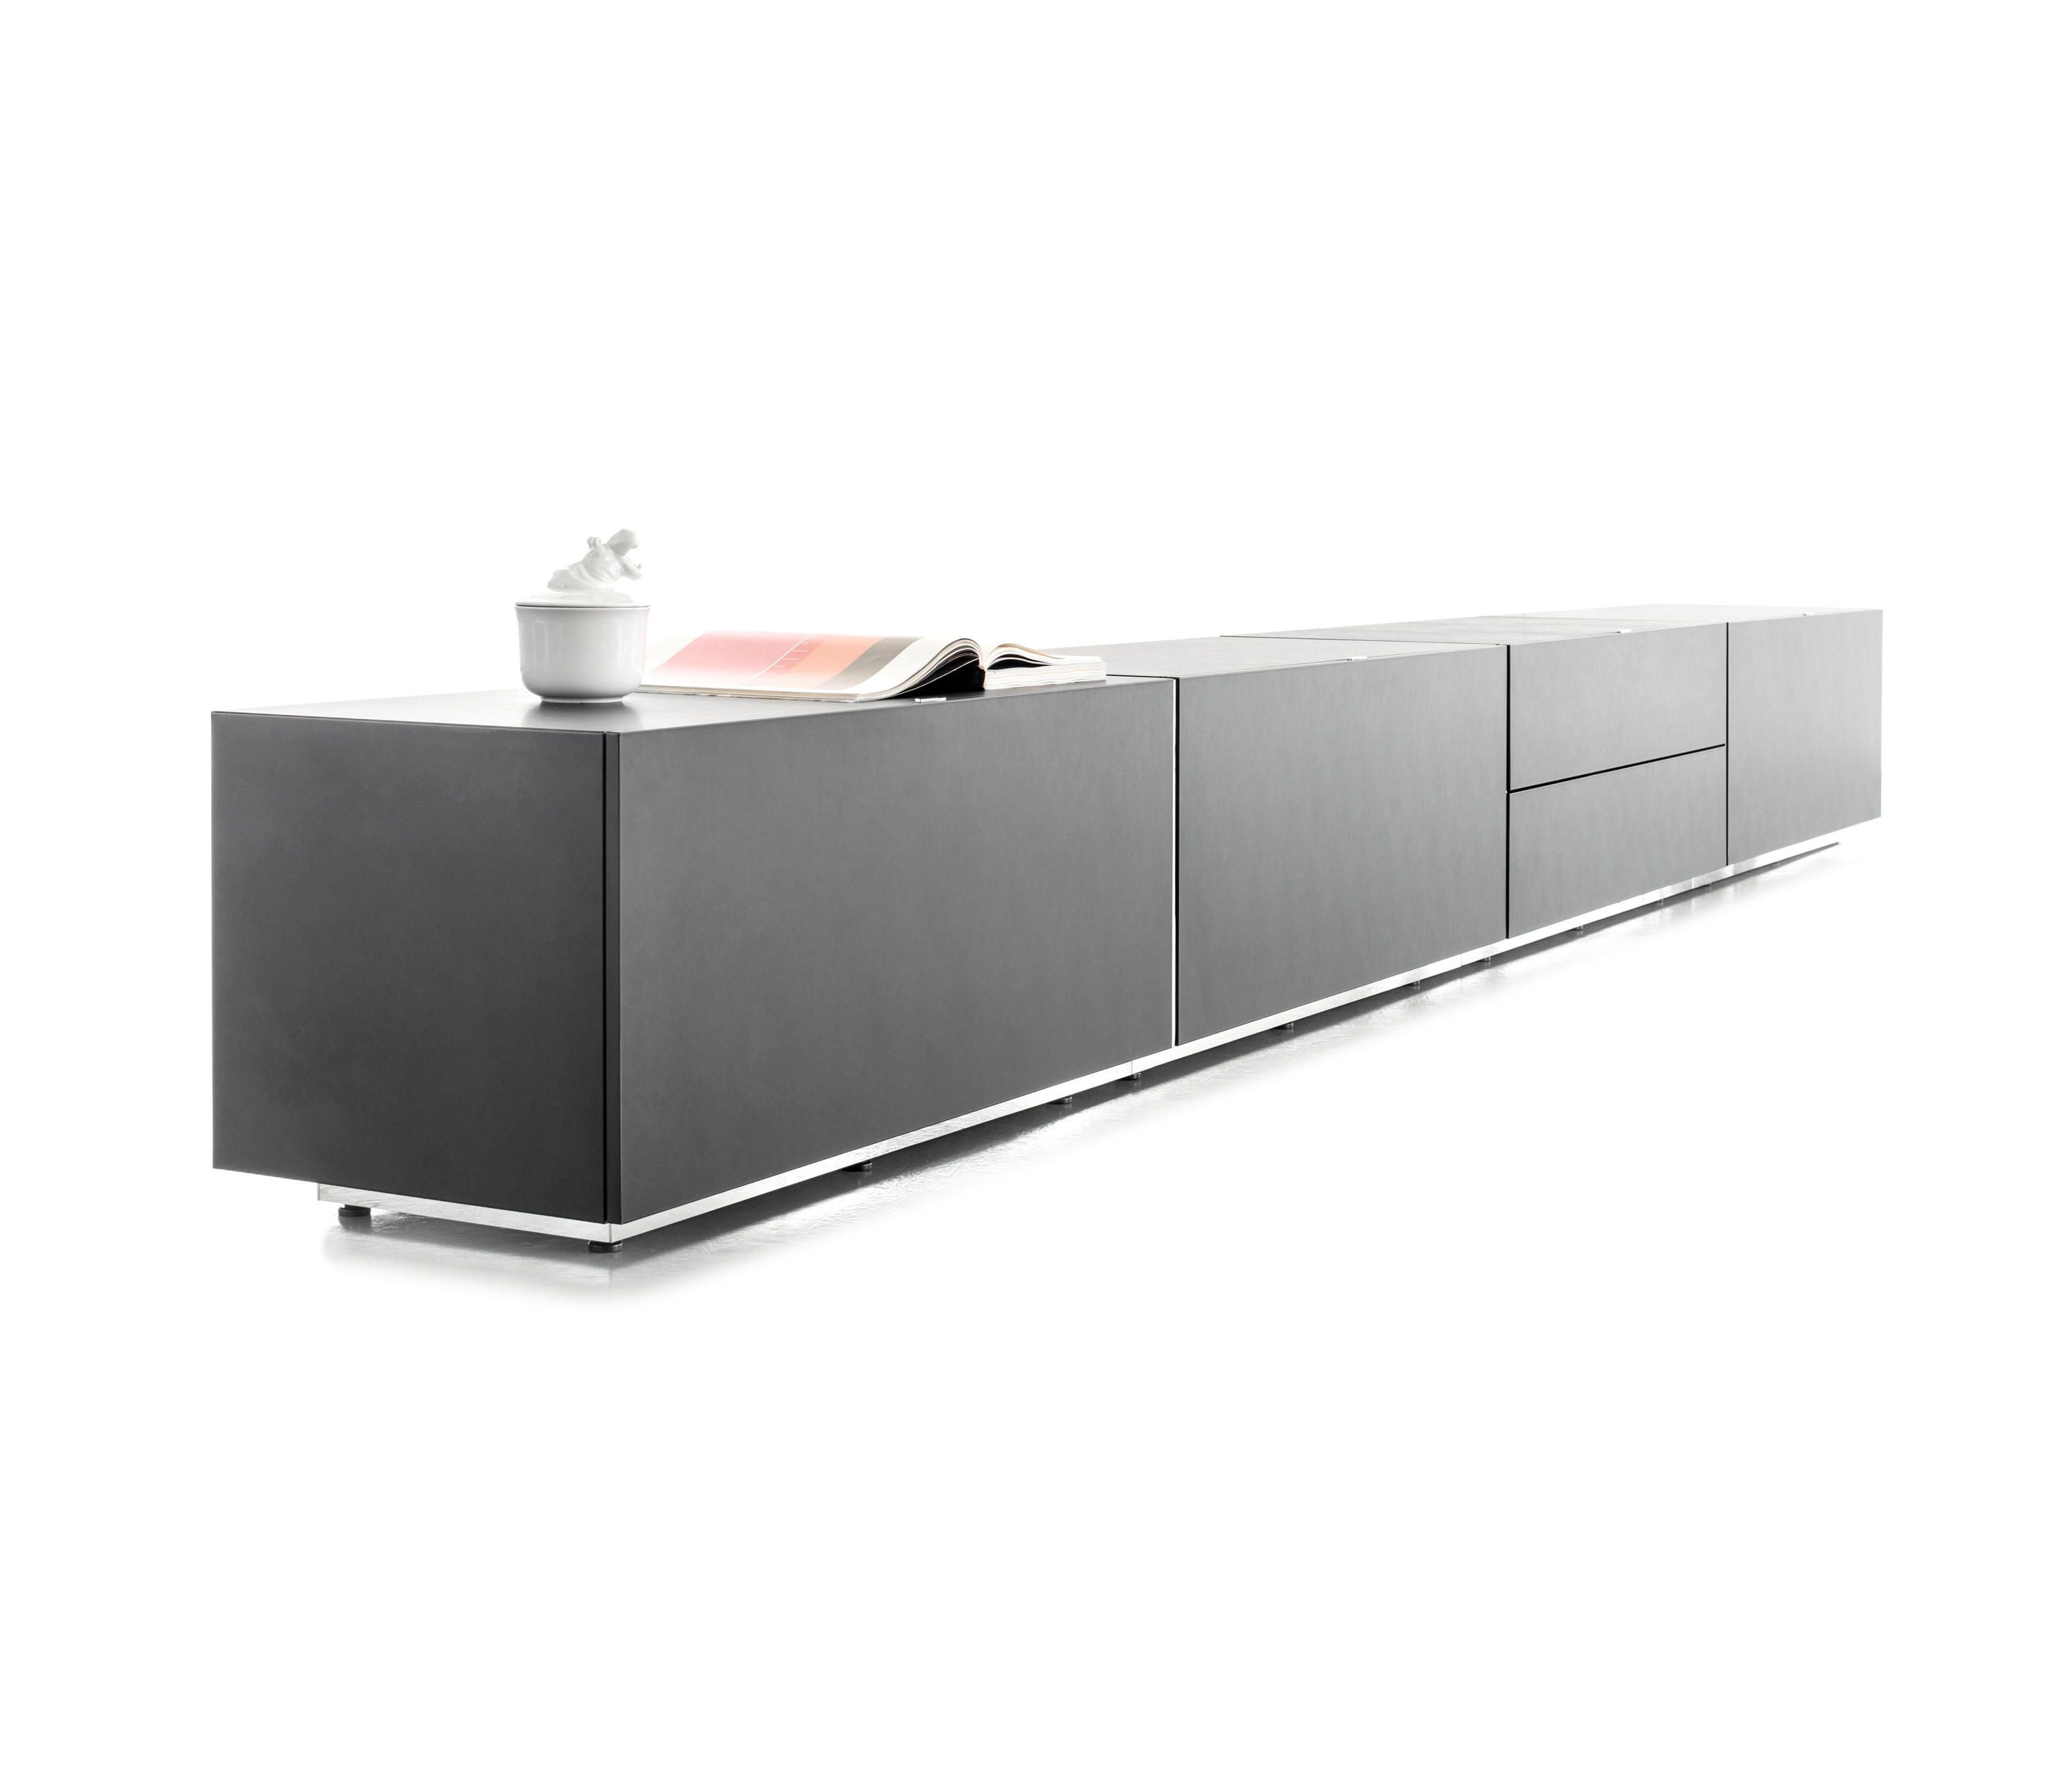 magic matrix lowboard von yomei sideboards kommoden interior design living room sideboard